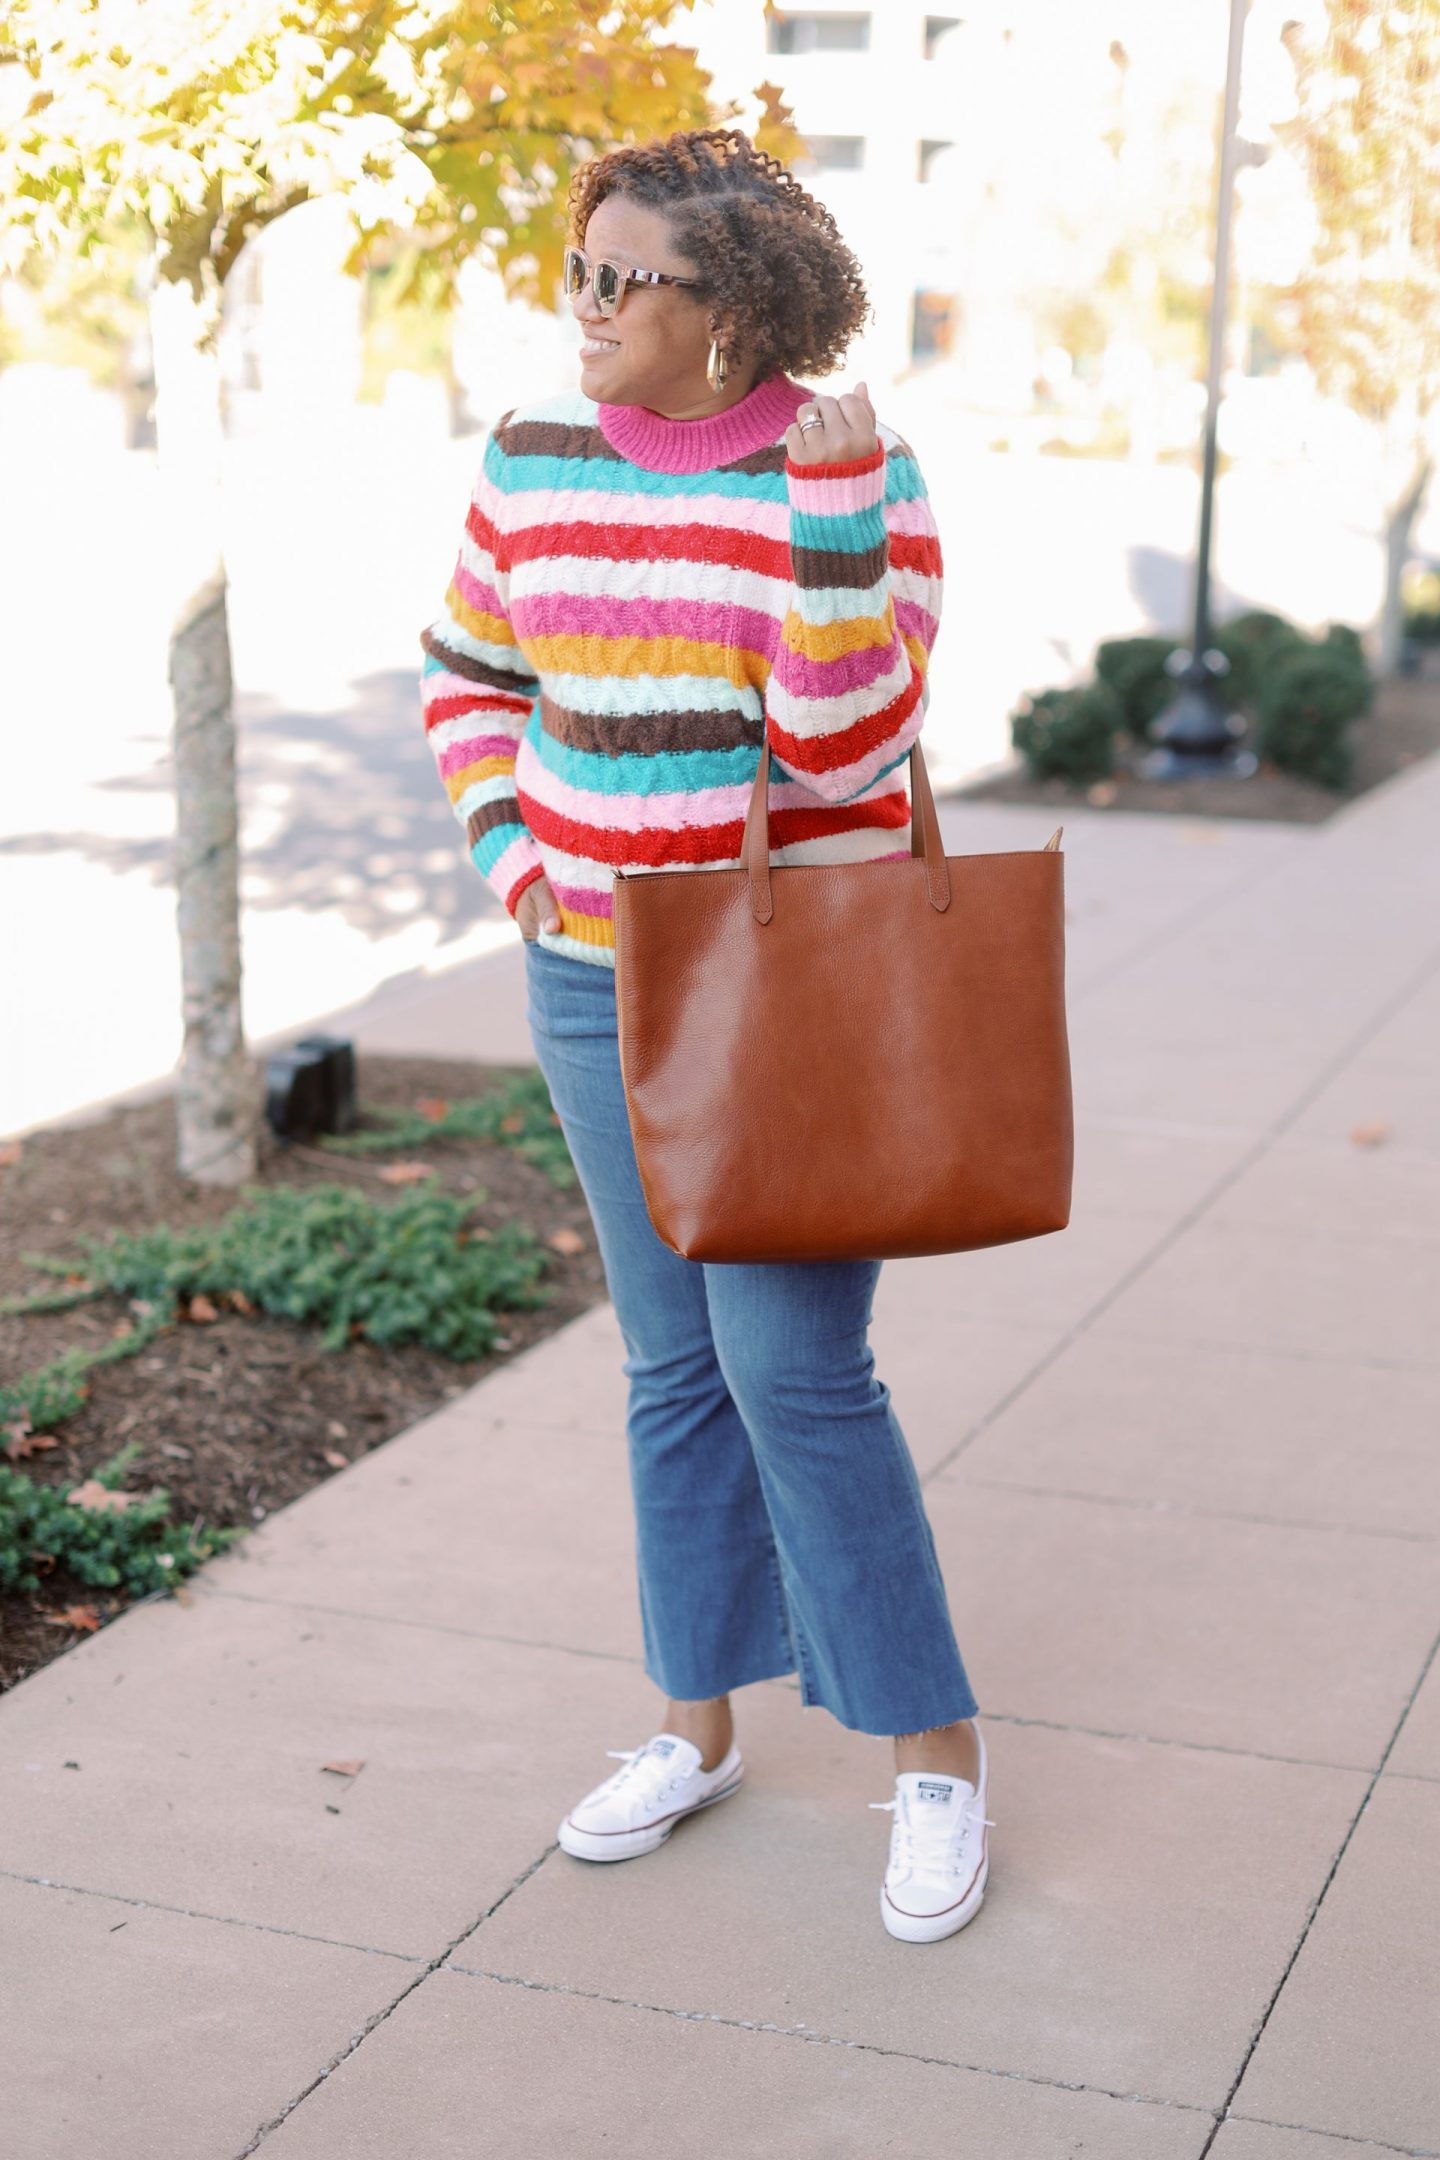 Fall Clothing by popular Kentucky fashion blog, Really Rynetta: image of a woman wearing a Nordstrom x Atlantic-Pacific Cable Knit Sweater HALOGEN®, Nordstrom Slim Demi-Boot Jeans MADEWELL, Nordstrom Chuck Taylor® Shoreline Sneaker CONVERSE, Nordstrom Zip Top Transport Leather Tote MADEWELL, and Nordstrom Kaia Huggie Hoop Earrings KENDRA SCOTT.